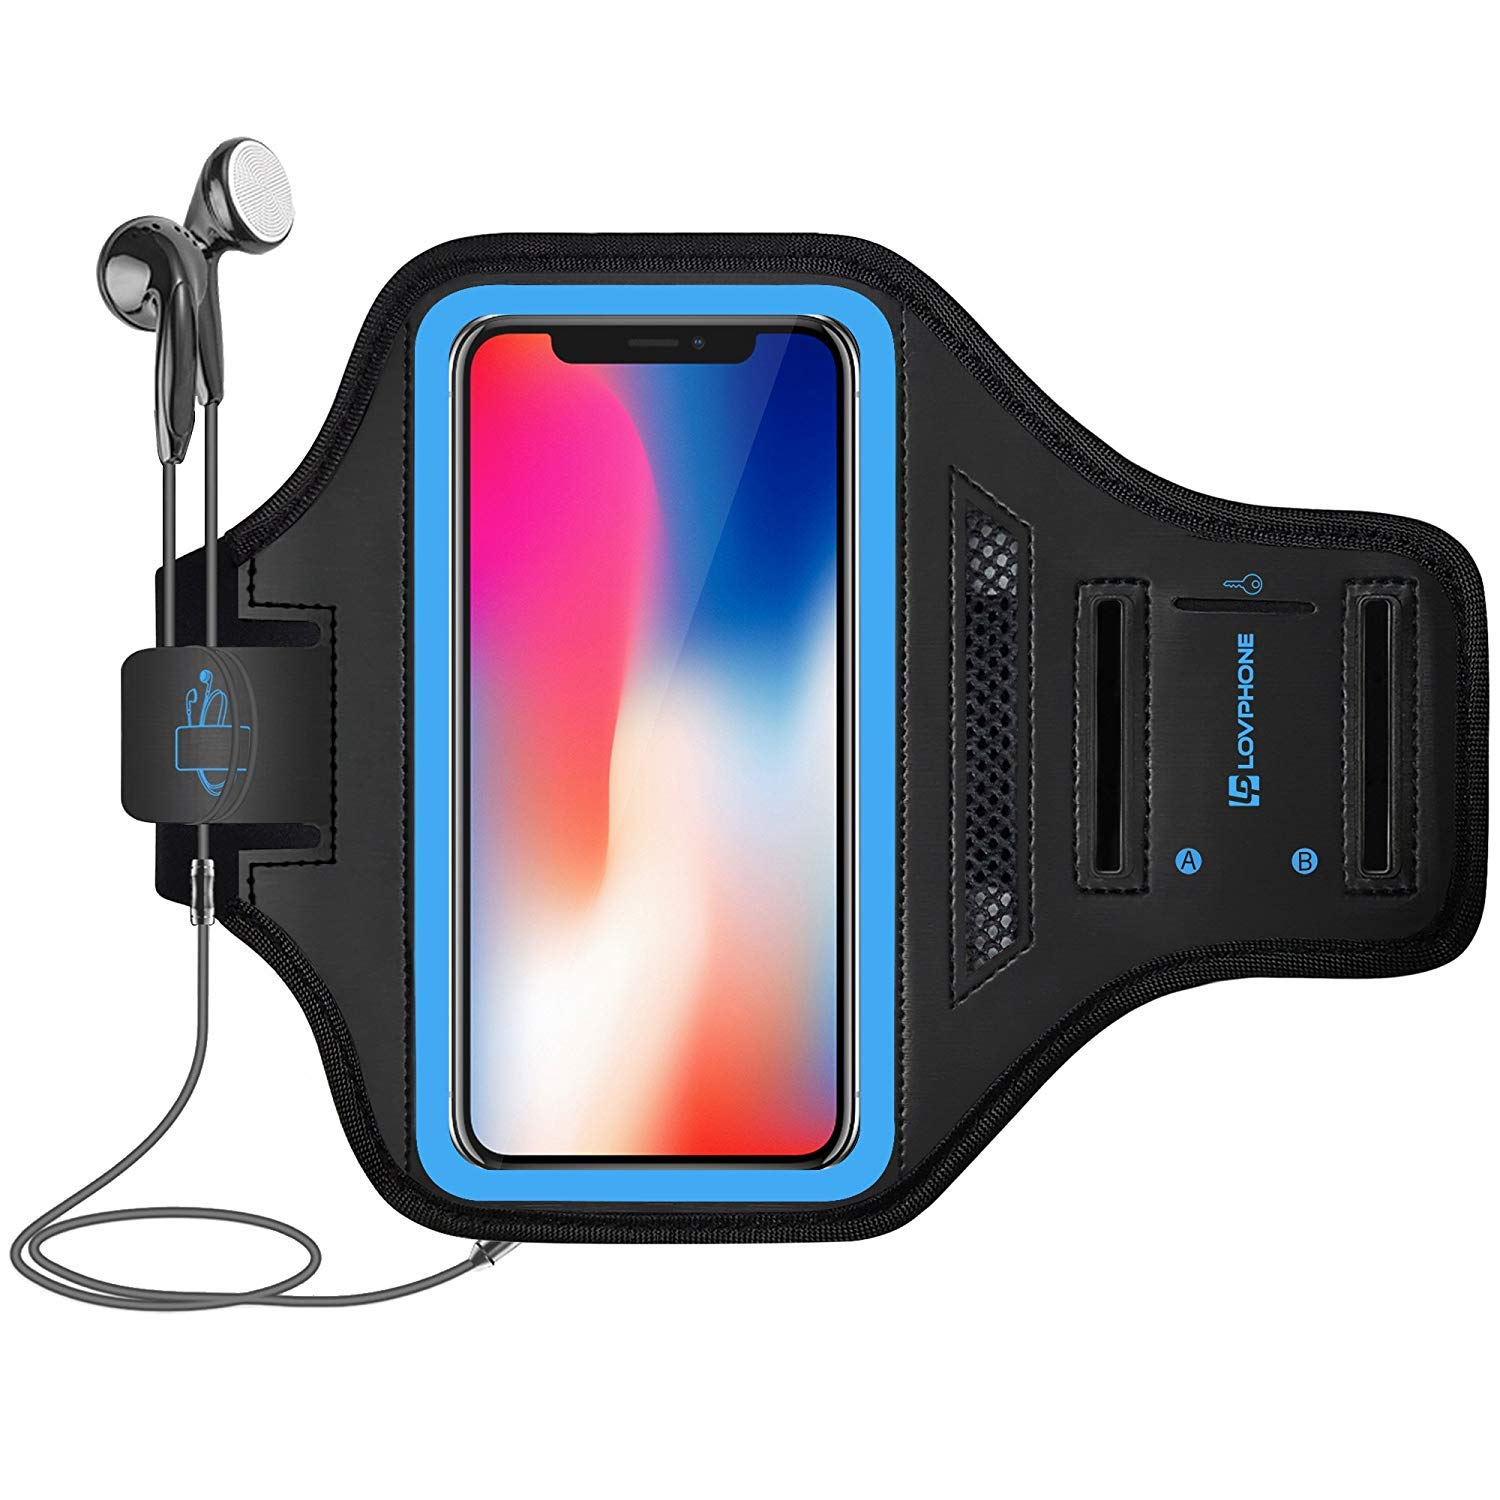 LOVPHONE Running Armband for iPhone X, Waterproof Sport Outdoor Gym Running Key Holder Card Slot Phone Case Bag Armband (Blue)